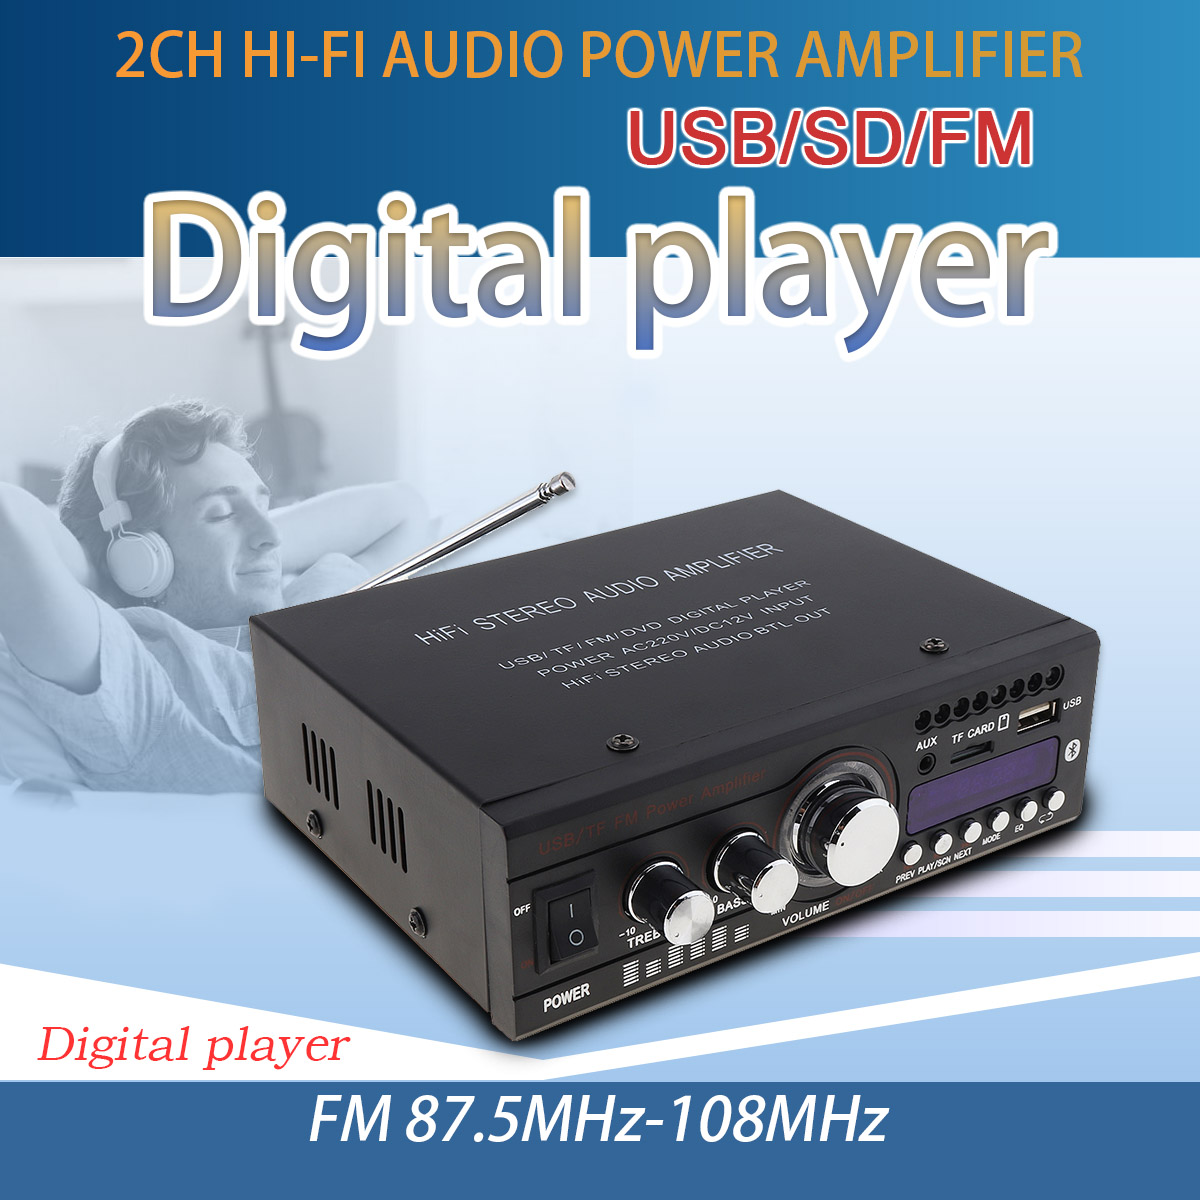 DC 12V / AC 220V Bluetooth 2CH HiFi Car Stereo Audio Power Amplifier FM Radio Auto Hi-Fi Digital Player Support USB SD FM DVD jtron ta2024 dc 12v double track 15w 15w car pc hi fi mini digital amplifier board green